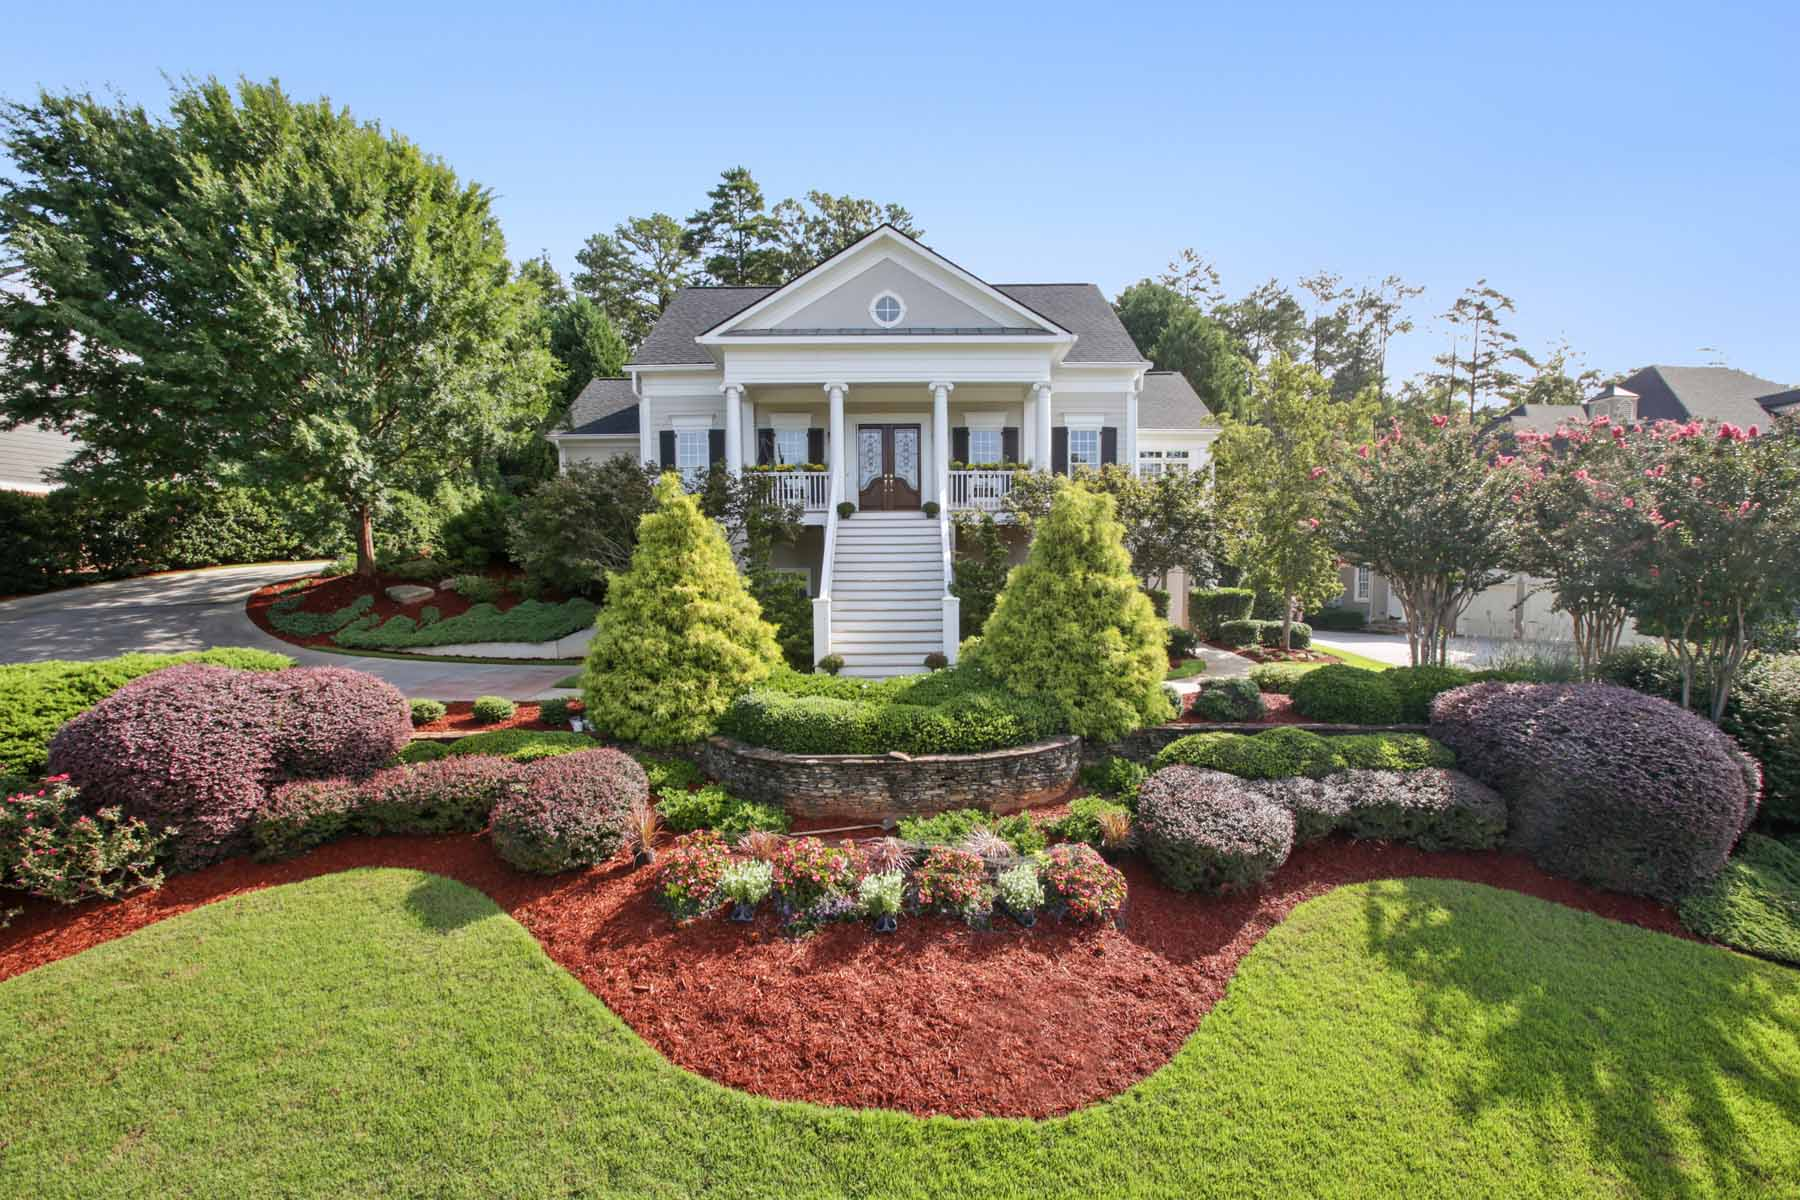 Moradia para Venda às Stunning North Peachtree City Location, easy access to airport and Atlanta. 108 Peninsula Drive Peachtree City, Geórgia 30269 Estados Unidos